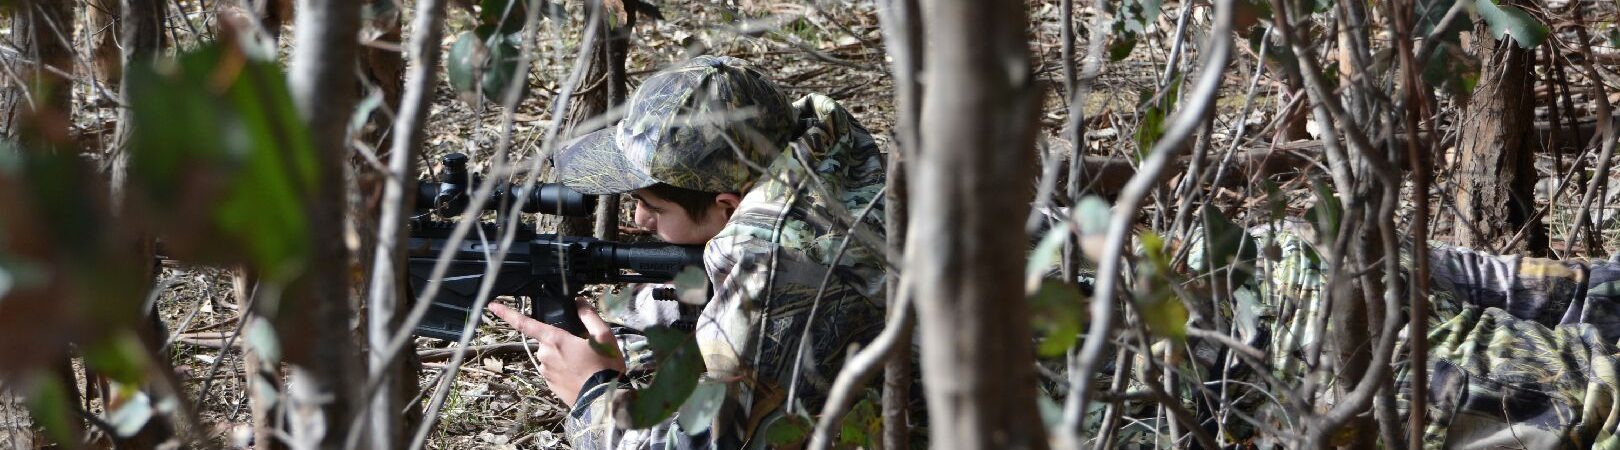 Austealth Australian Camo - Hunting in the Australian bush.